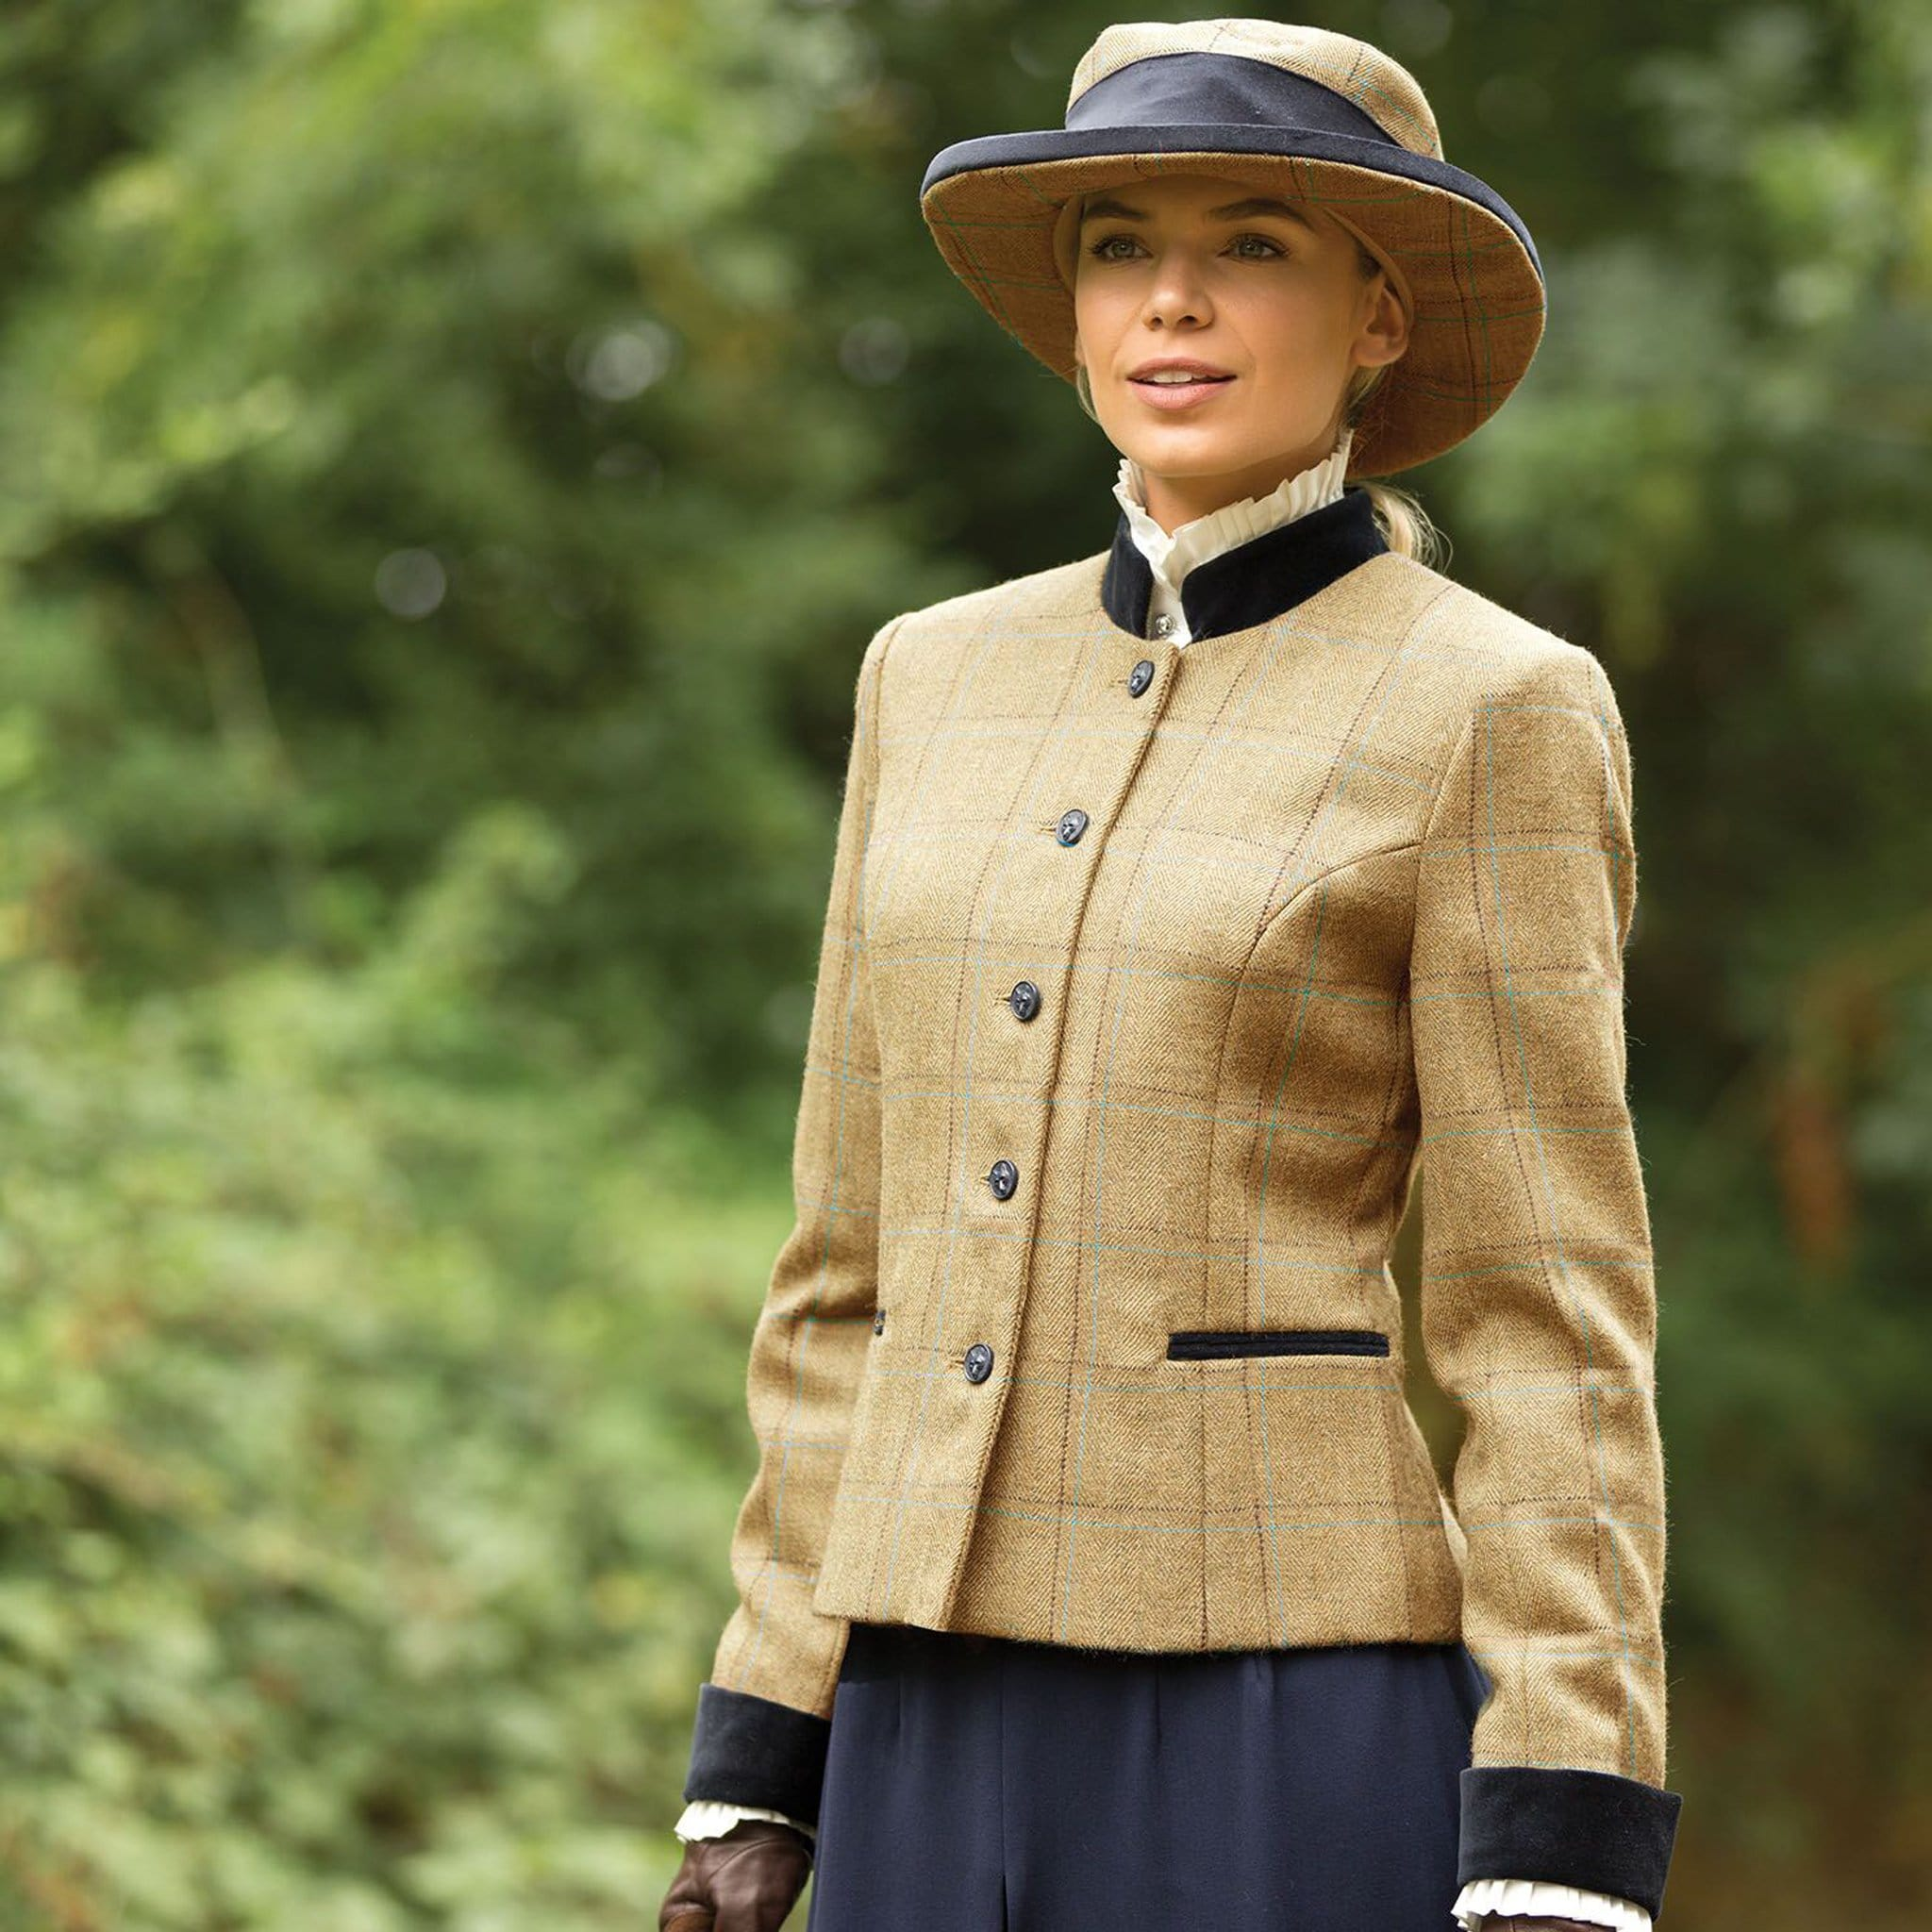 Equetech Studham Deluxe Tweed Leaders Jacket and Hat SDL Front